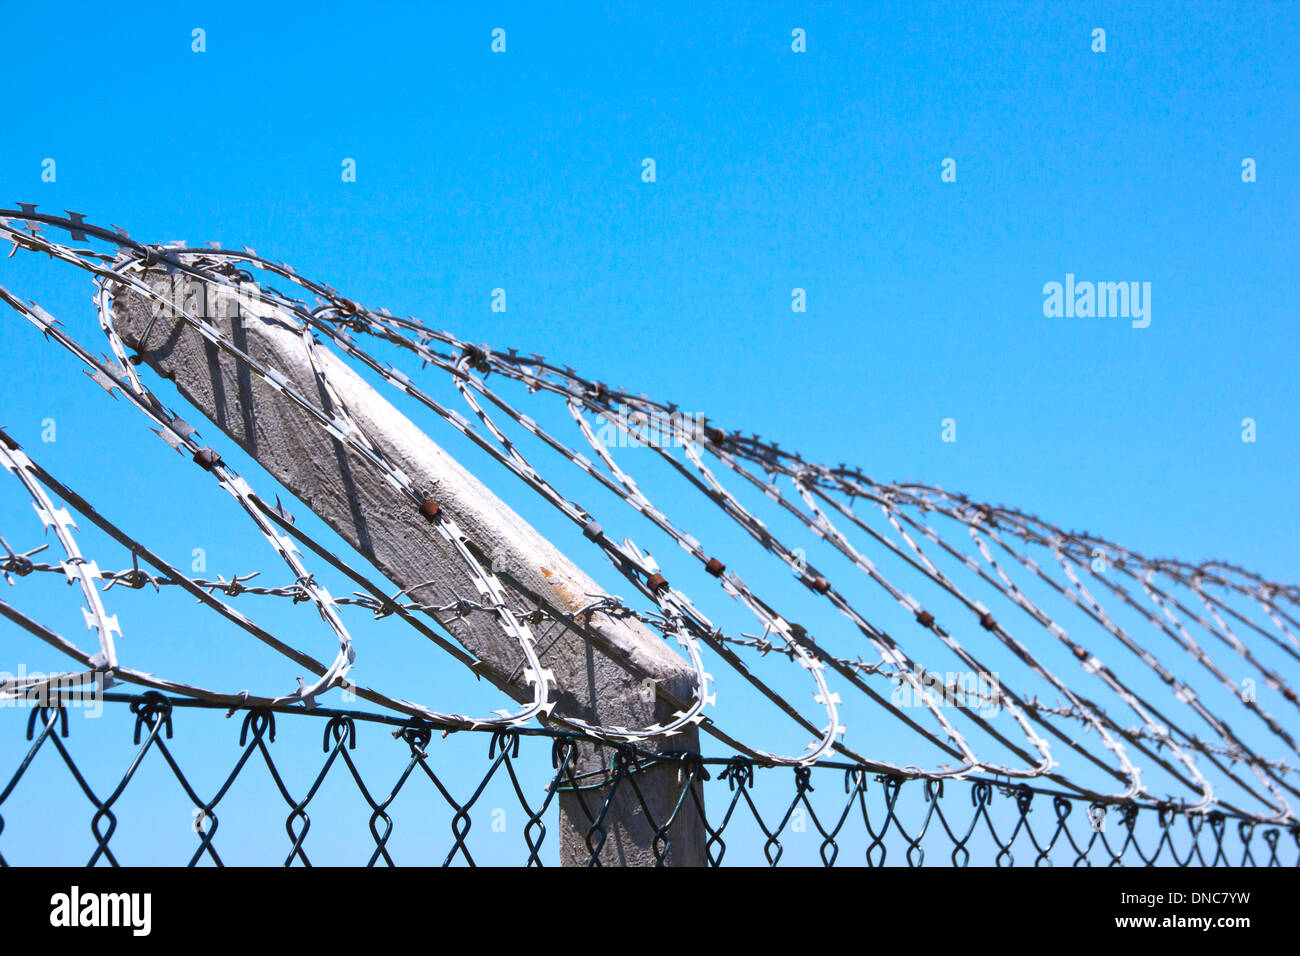 Barbed Wire Fence Skyline Stock Photos & Barbed Wire Fence Skyline ...